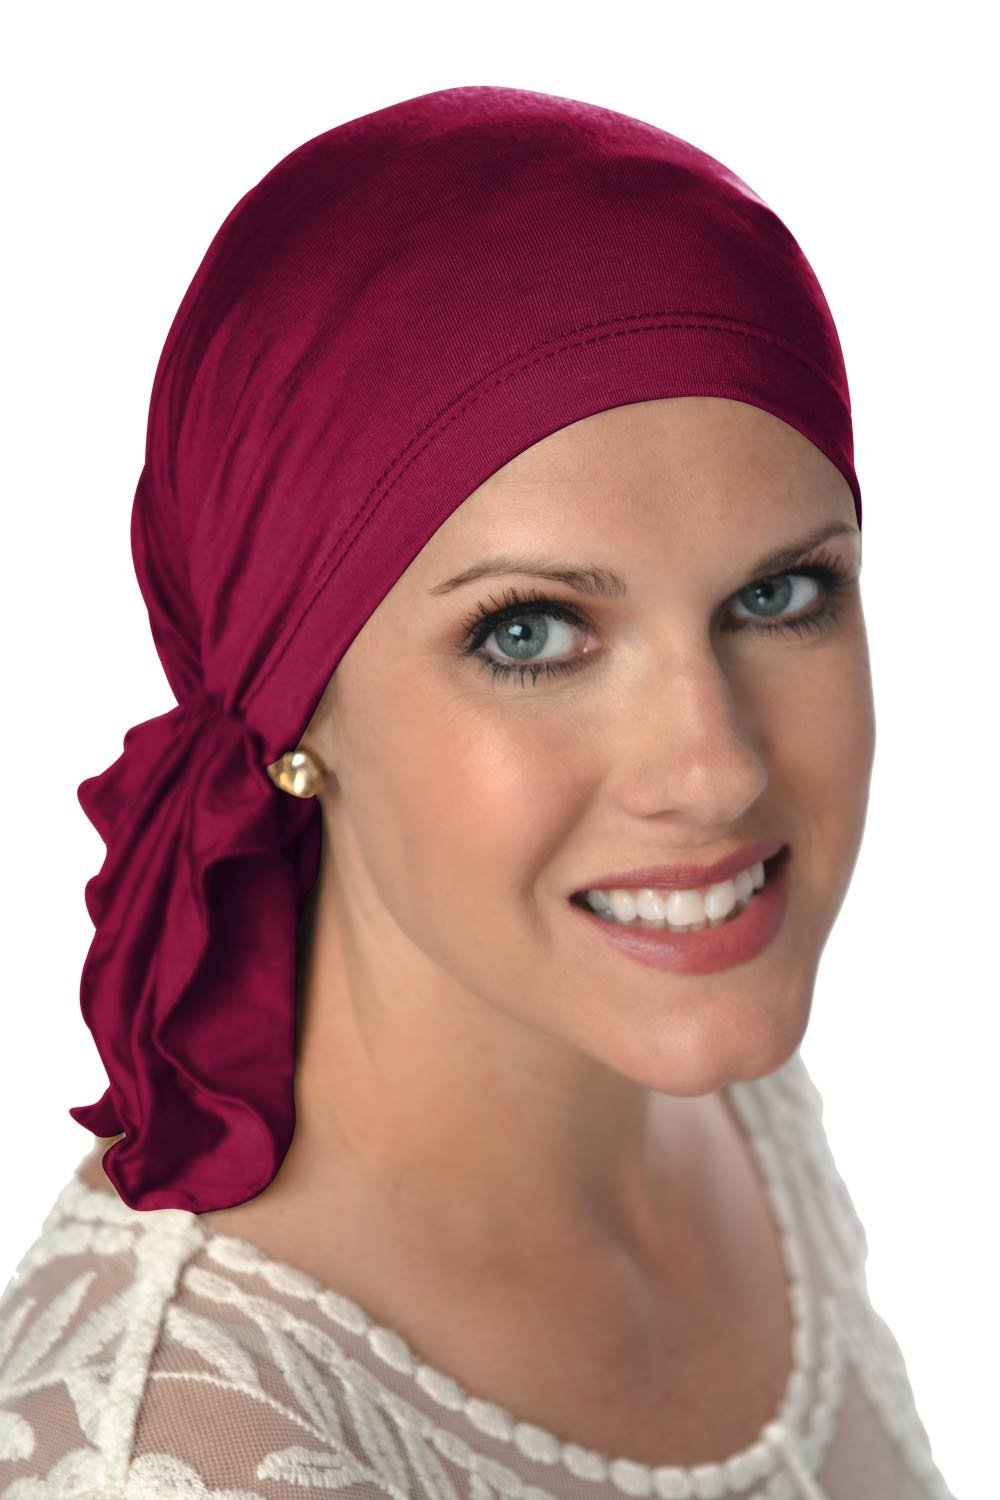 Headcovers Unlimited Slip-On Scarf- Caps for Women with Chemo Cancer Hair Loss SV-70062A-BLK